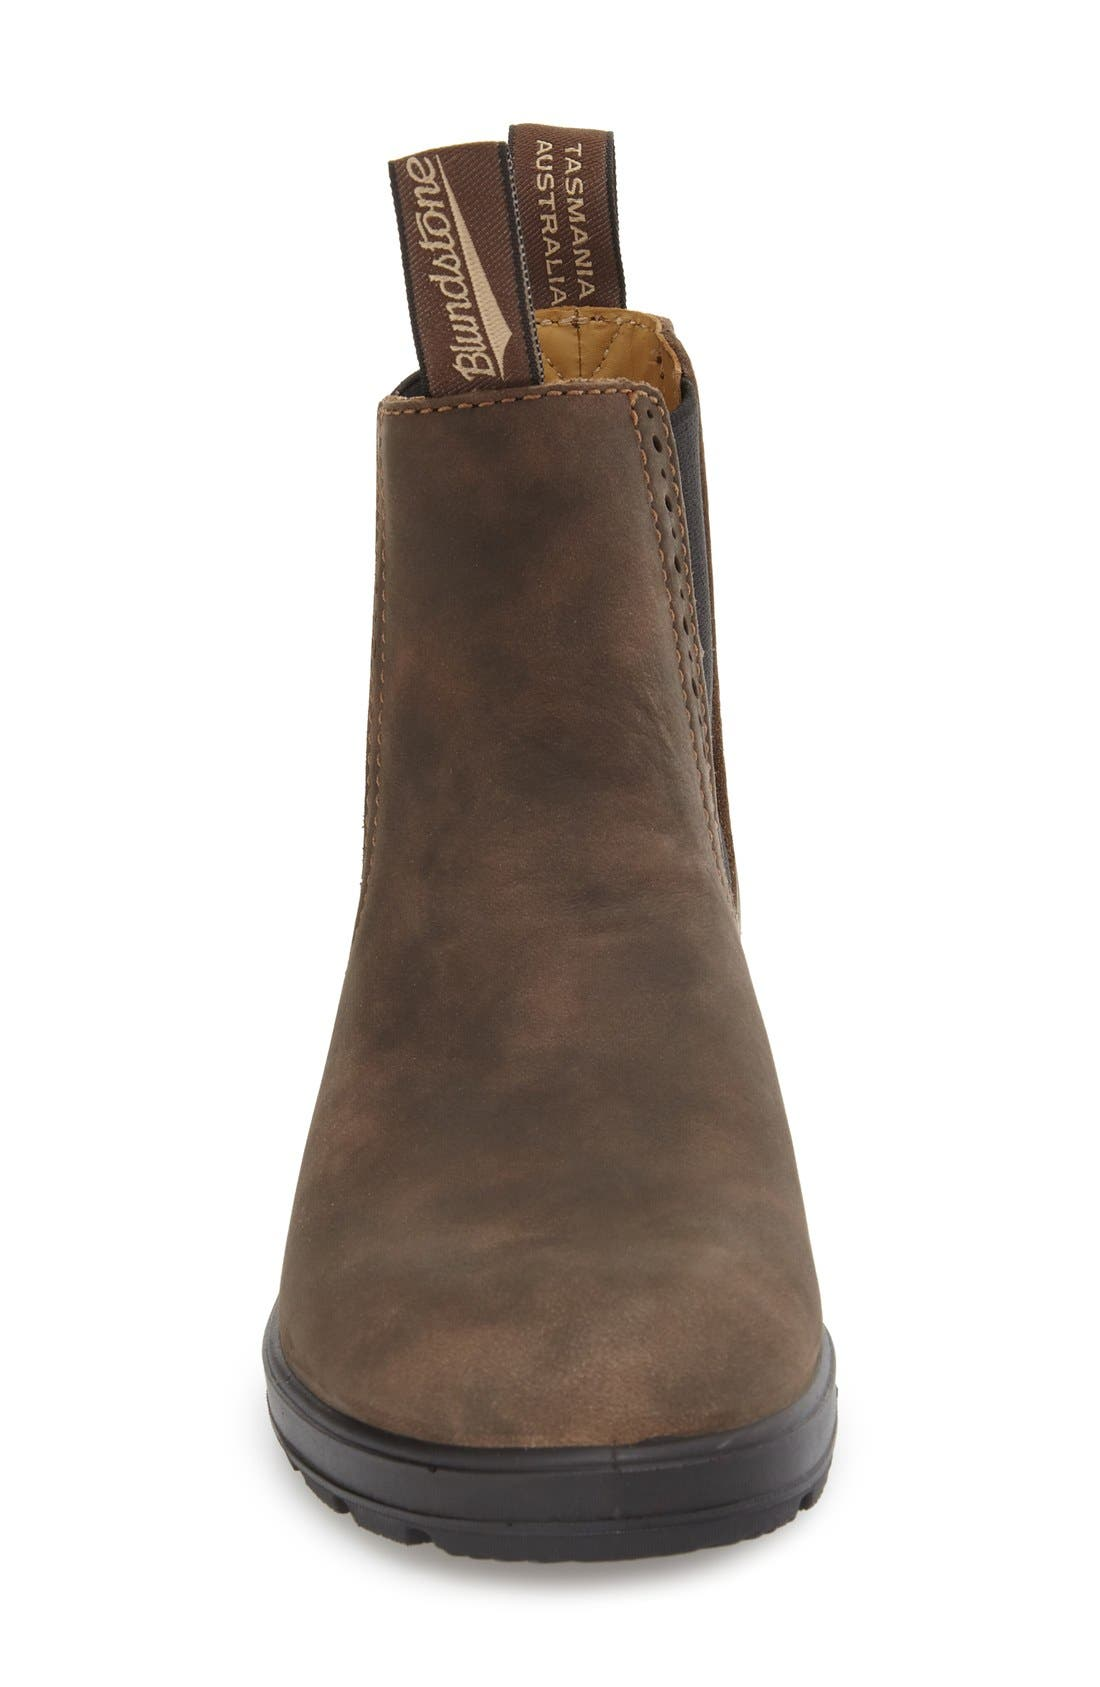 Footwear 'Original Series' Water Resistant Chelsea Boot,                             Alternate thumbnail 3, color,                             Rustic Brown Leather